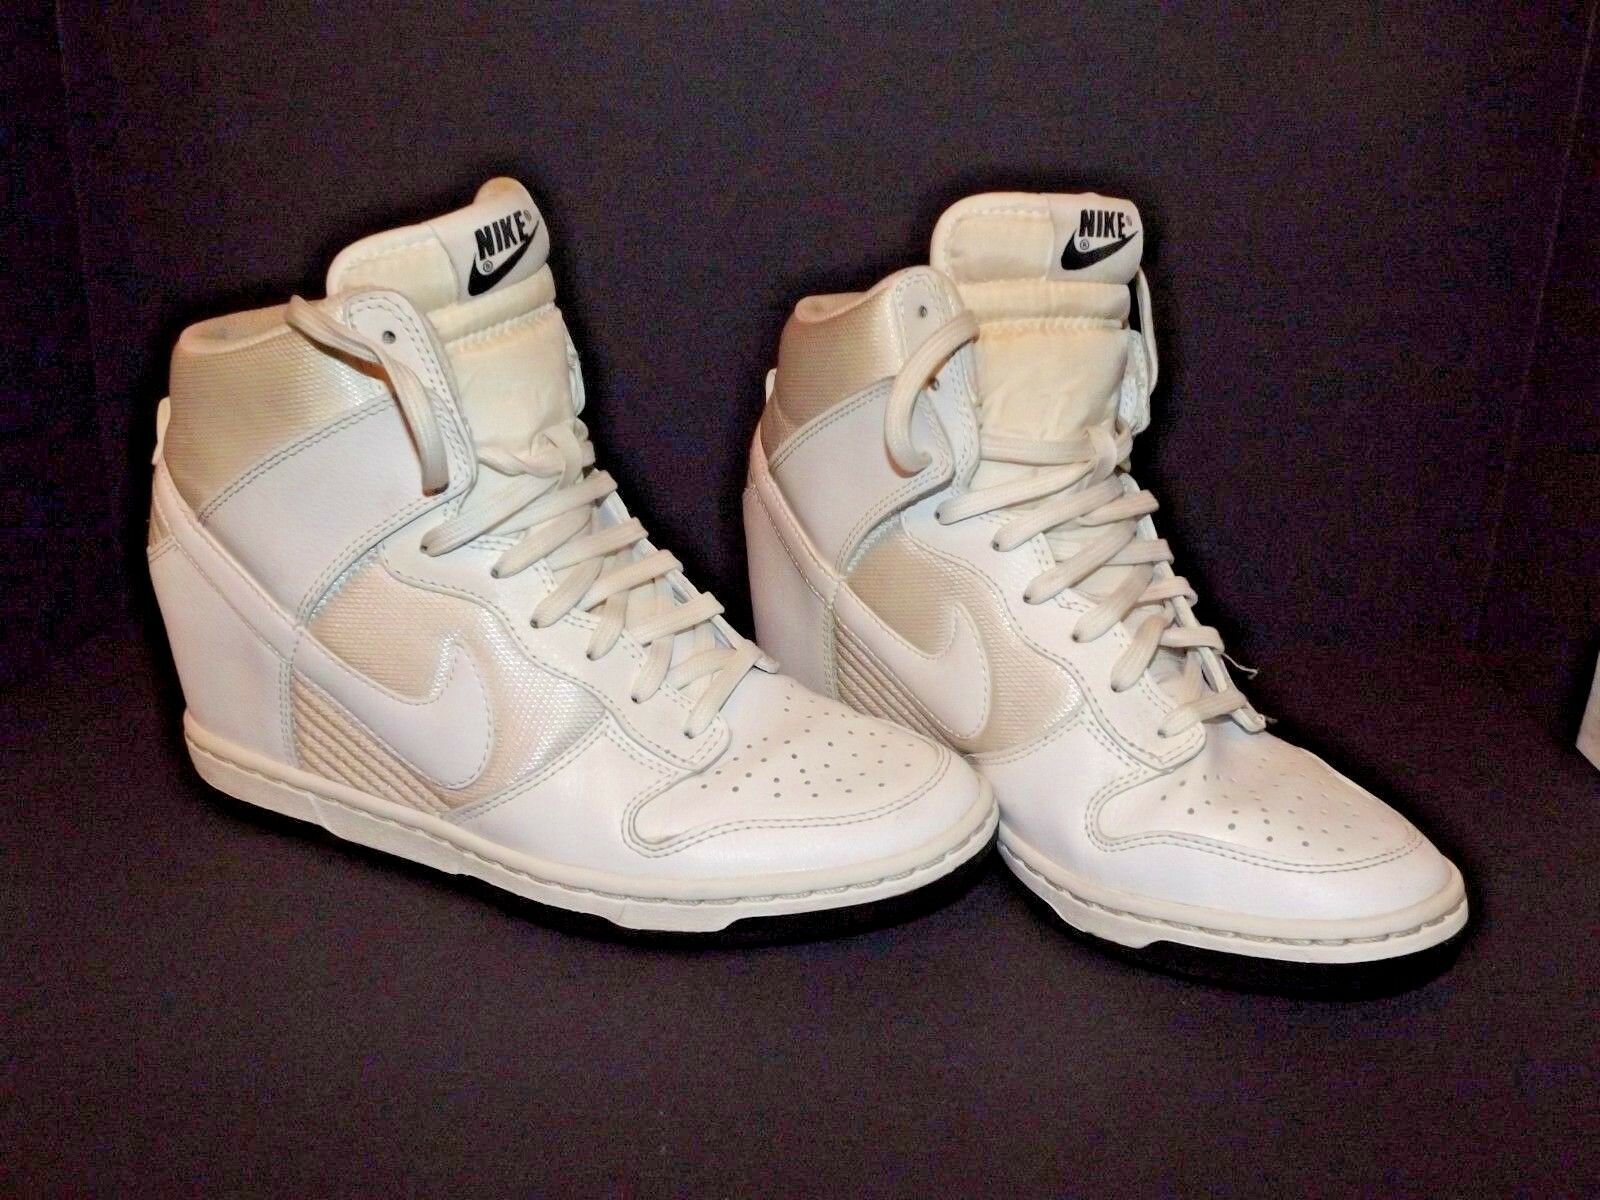 Nike Dunk Sky Hi Essential Hidden Wedge Off White 644877-101 Women's Size 7? (x)